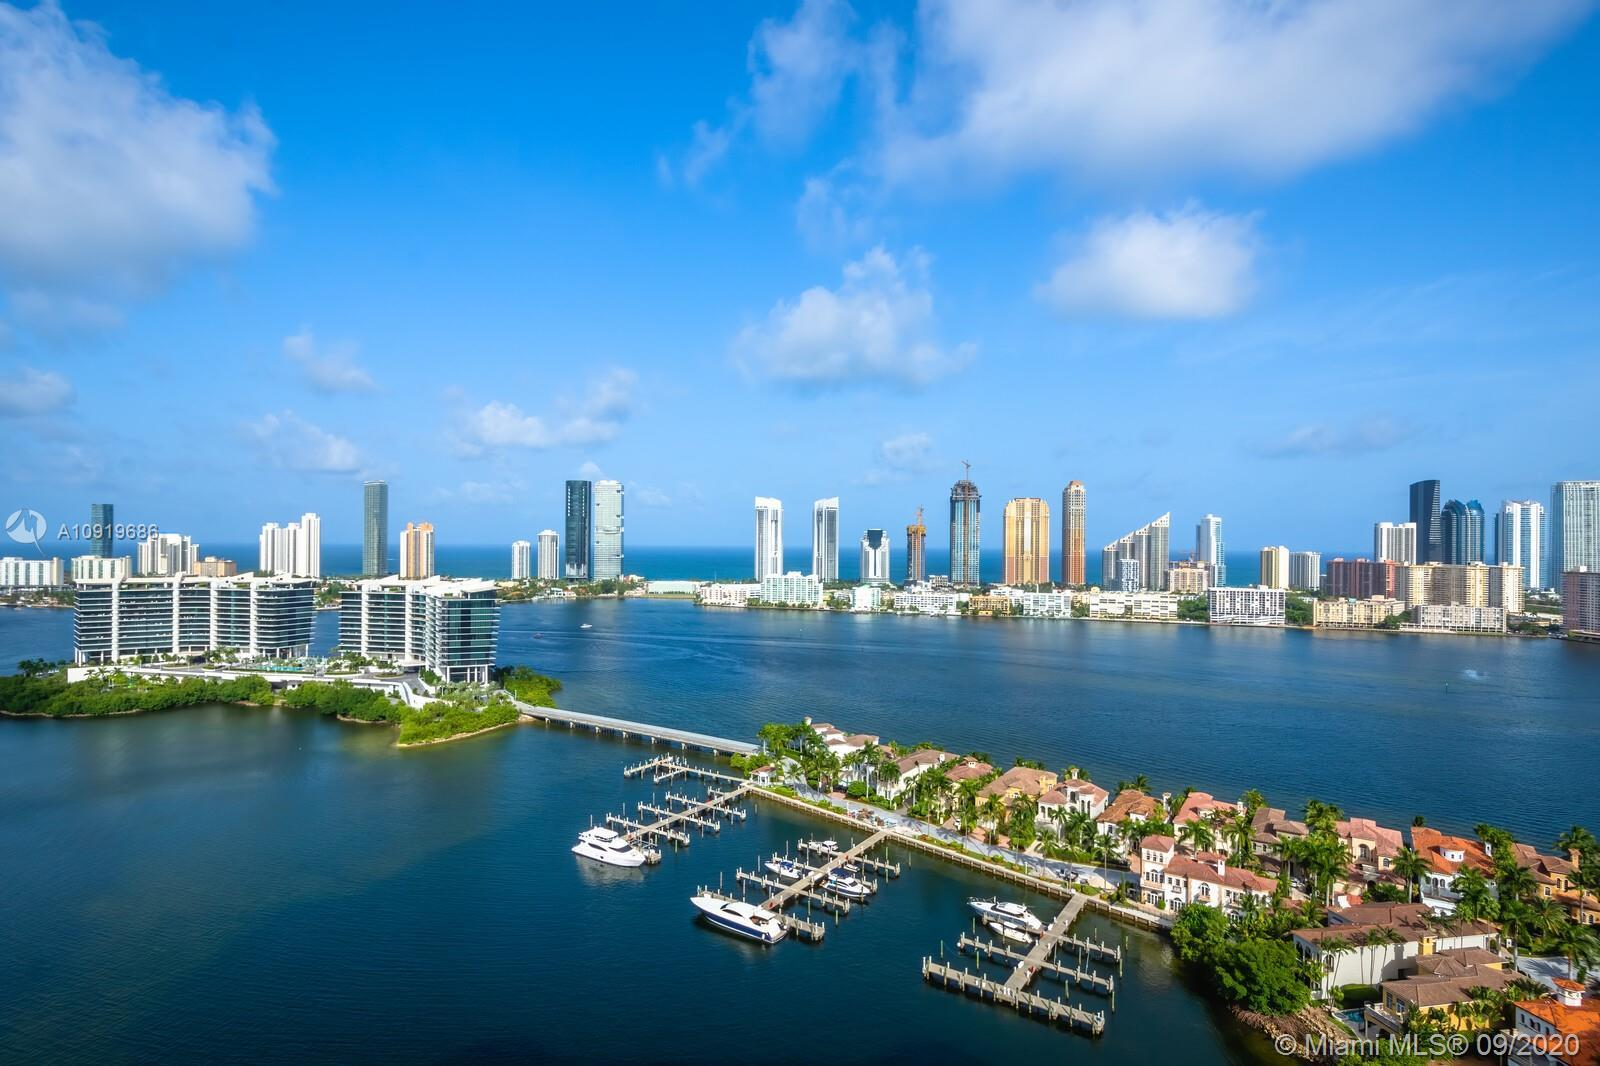 Aventura -Williams Island 7000 Tower High Floor #3009 rarely available 2730sqft Two bedroom + office